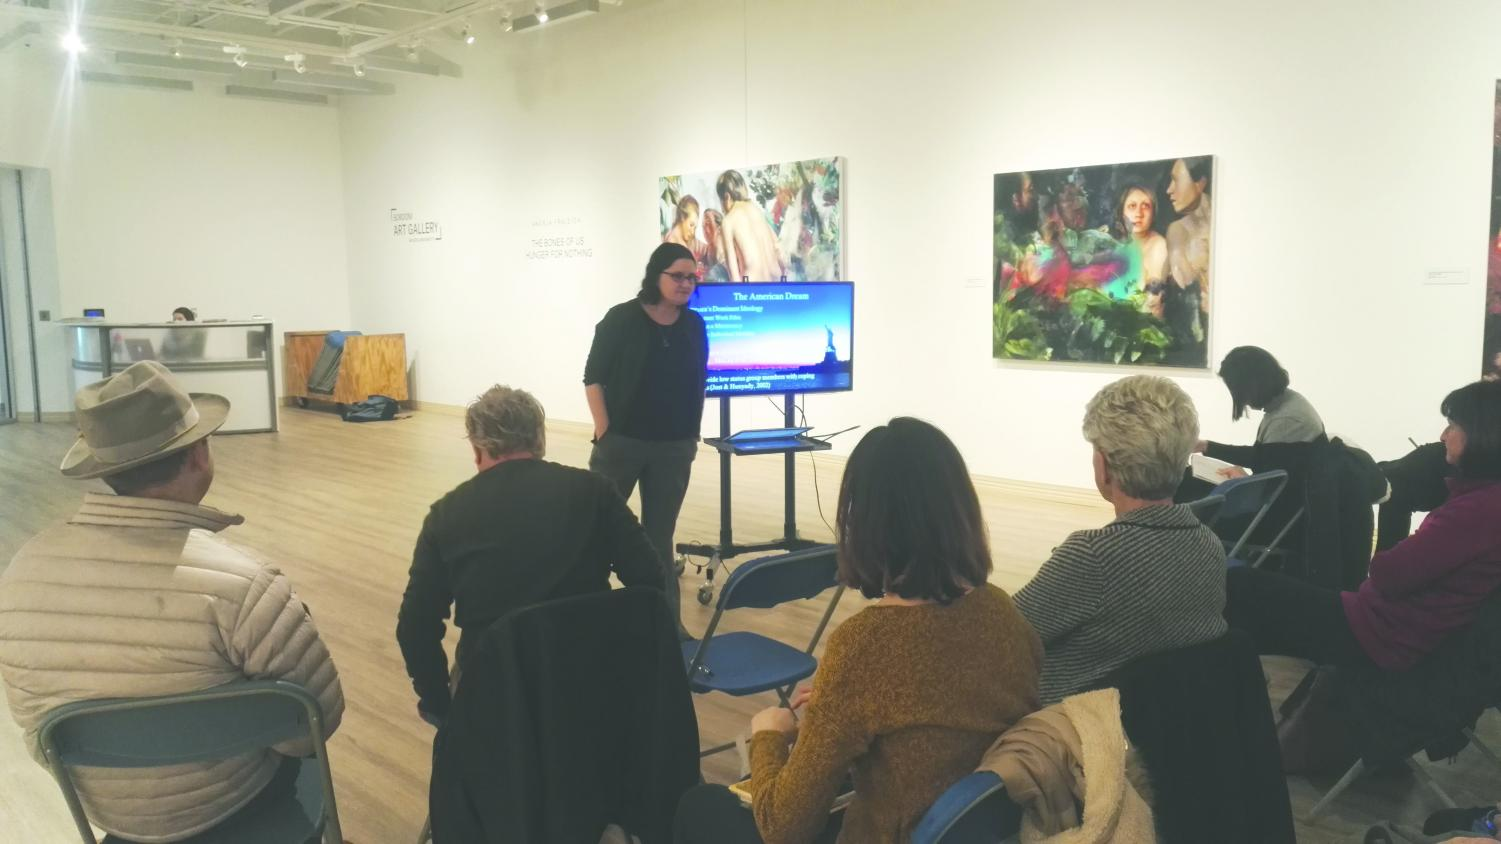 The lecture, held by Dr. Ellen Newell, was held in the Sordoni Art Gallery.